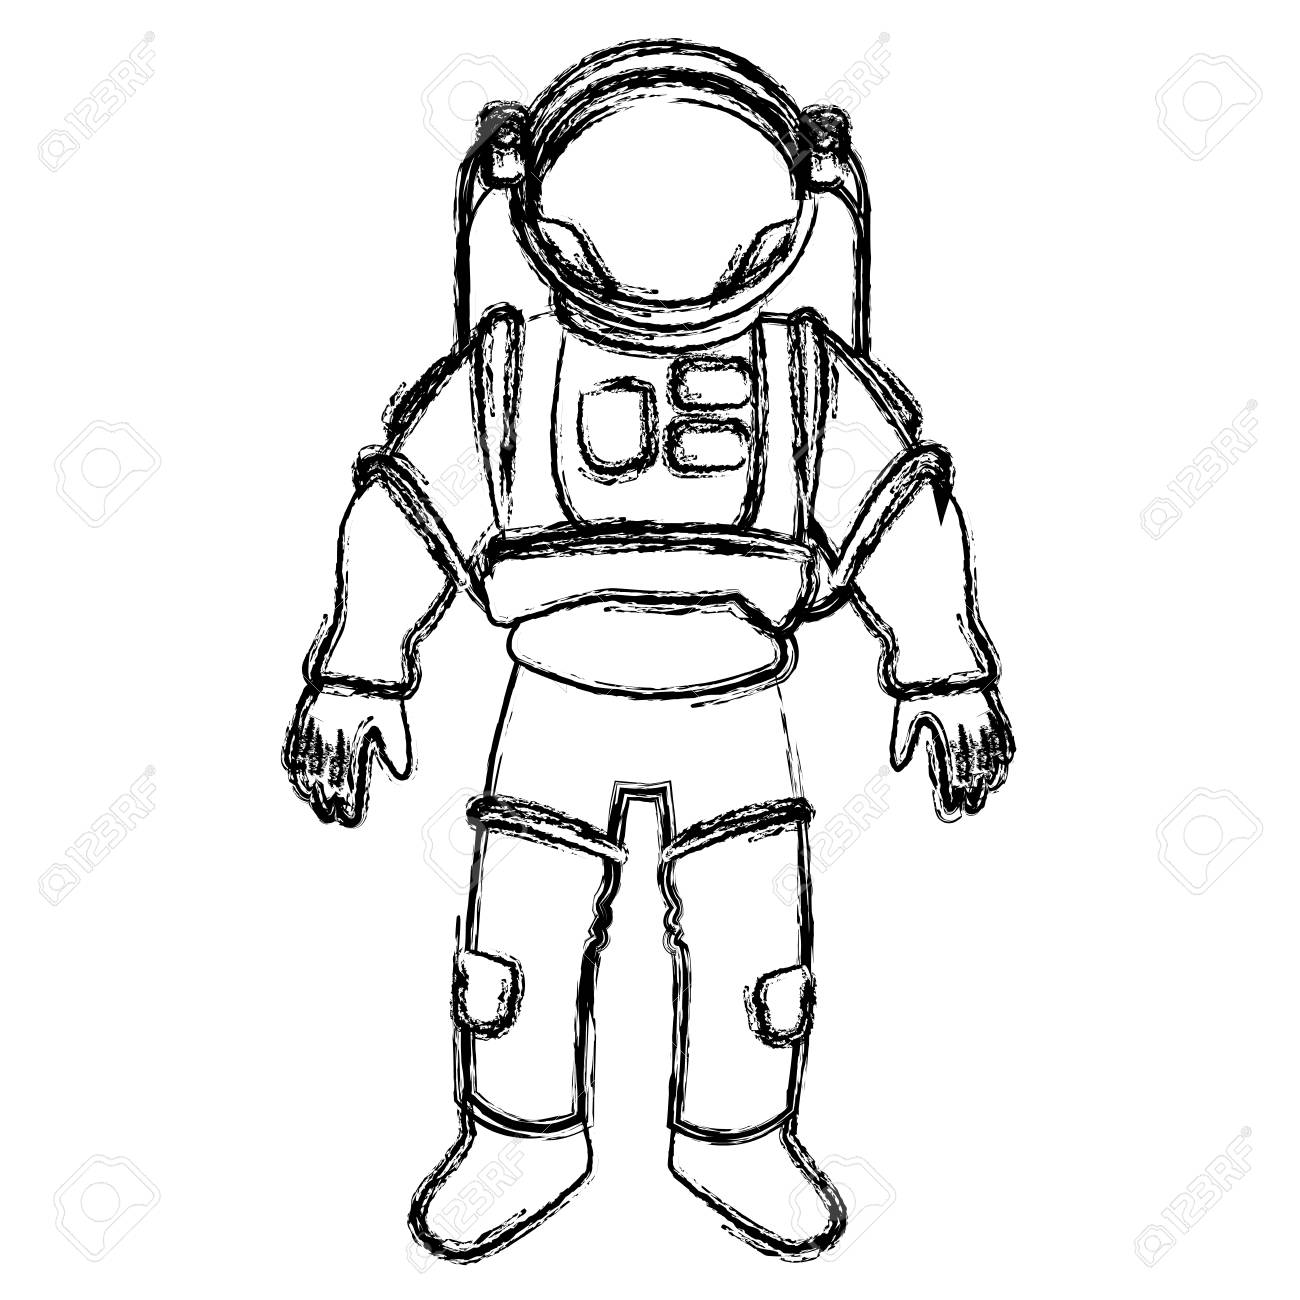 Astronaut Drawing at GetDrawings.com | Free for personal ...